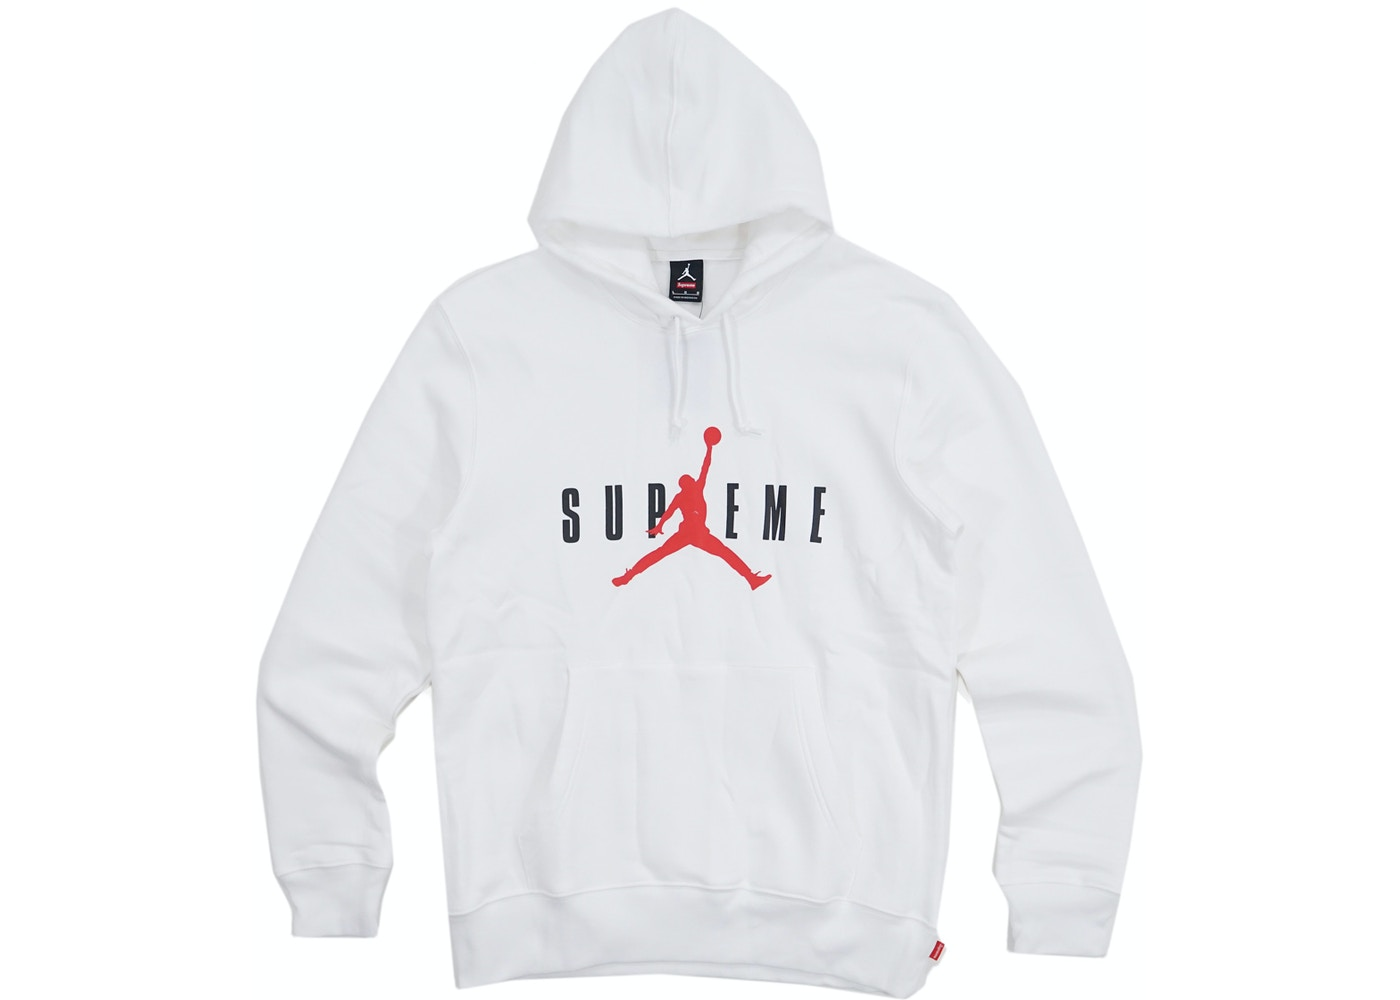 newest dabba ea7a7 Supreme Jordan Hooded Pullover White - FW15